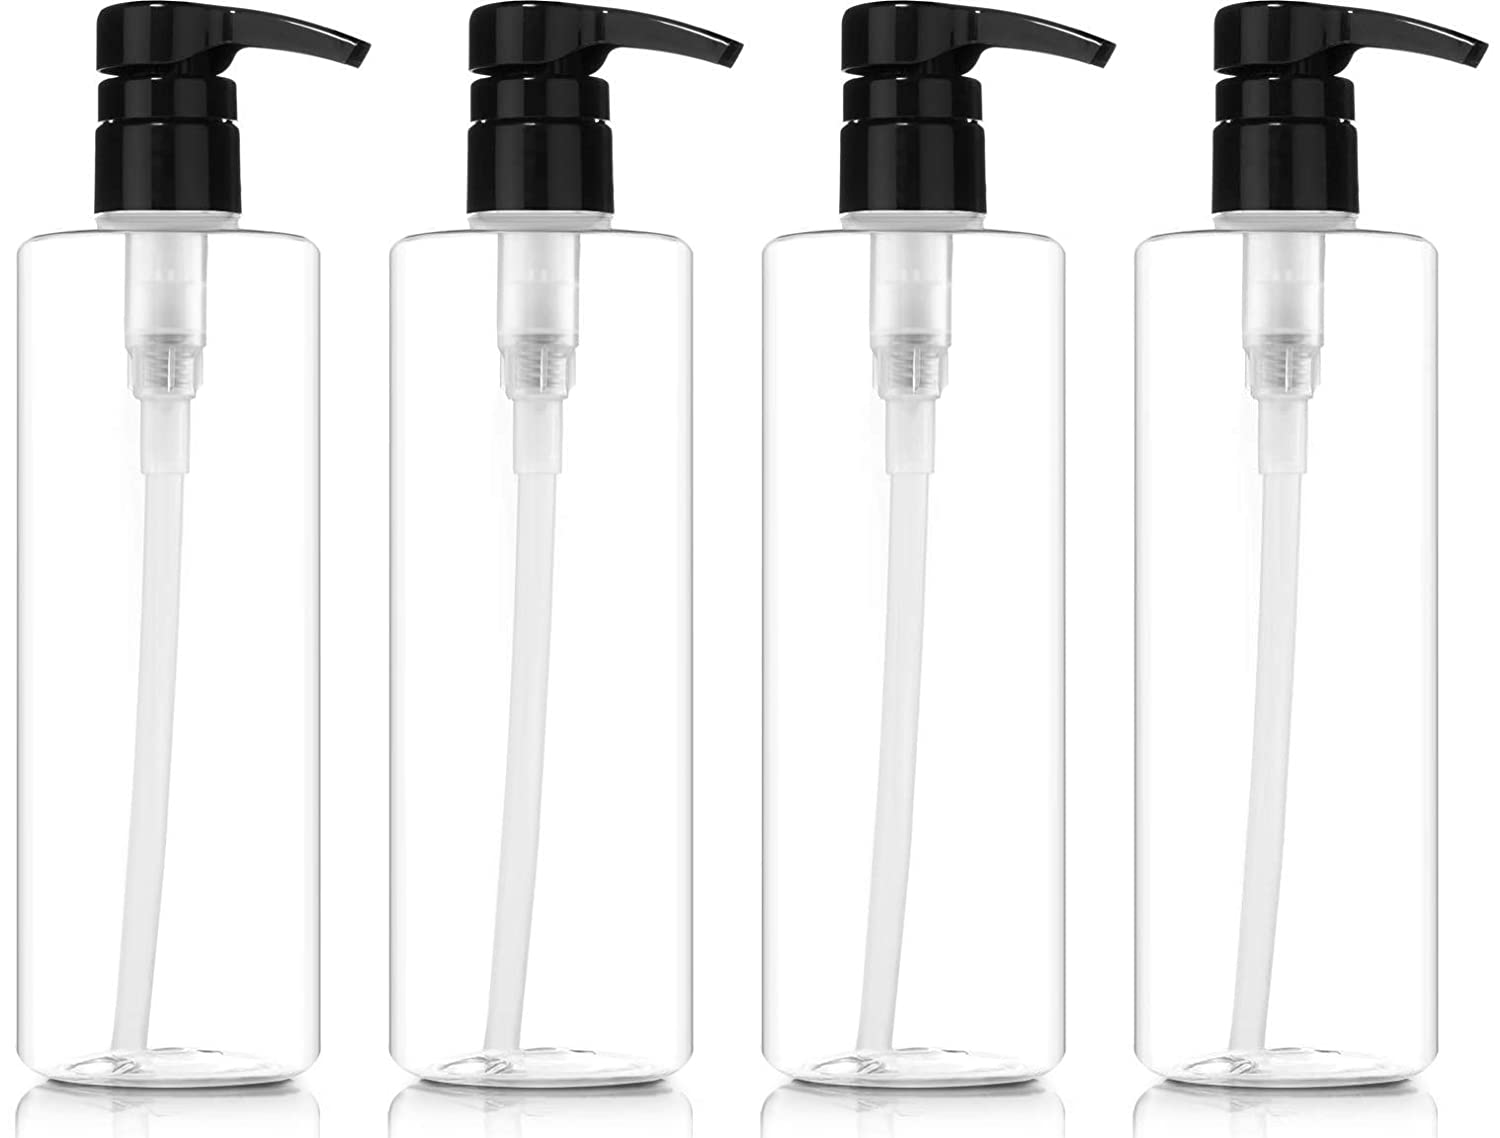 Pump Bottles for Shampoo 16oz, BPA-FREE, Plastic Cylinder with Lock-down LEAK PROOF Pumps (Pack of 4)